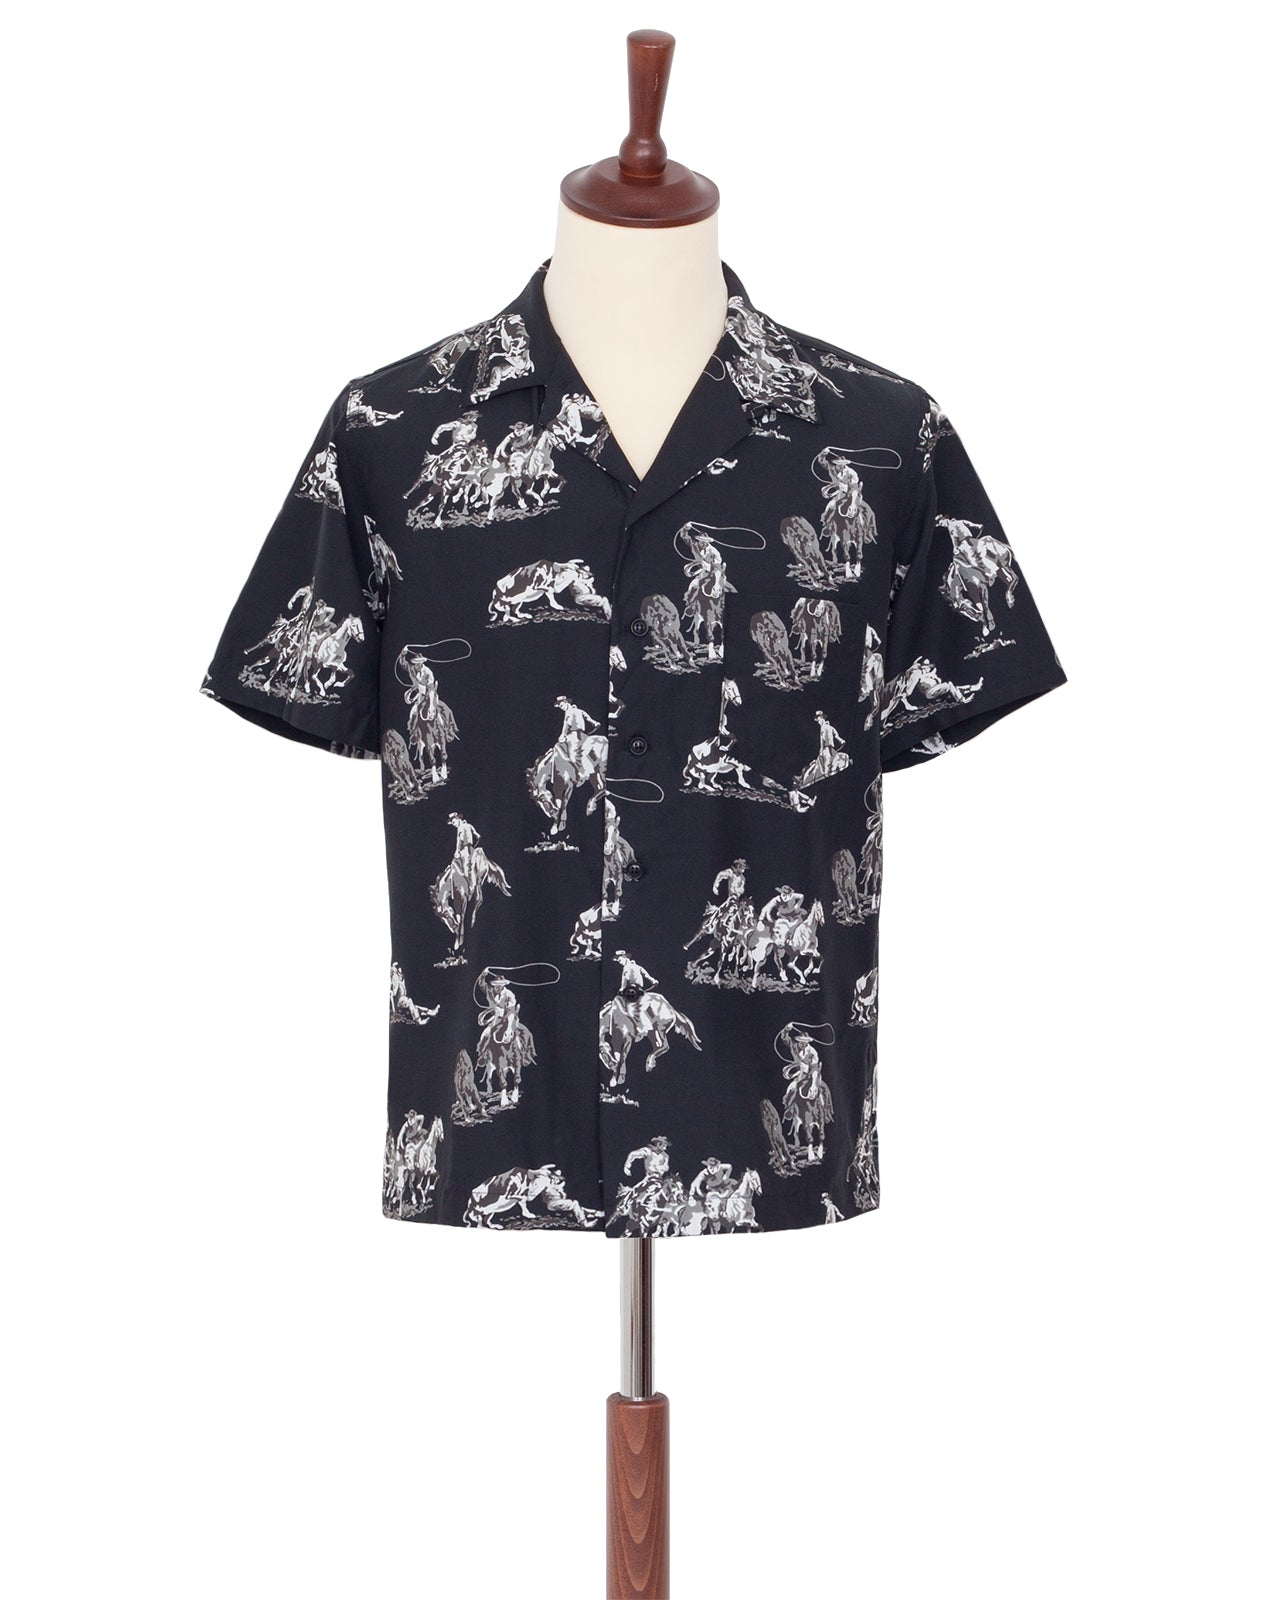 The Letters Open Collar Shirt, Cowboys